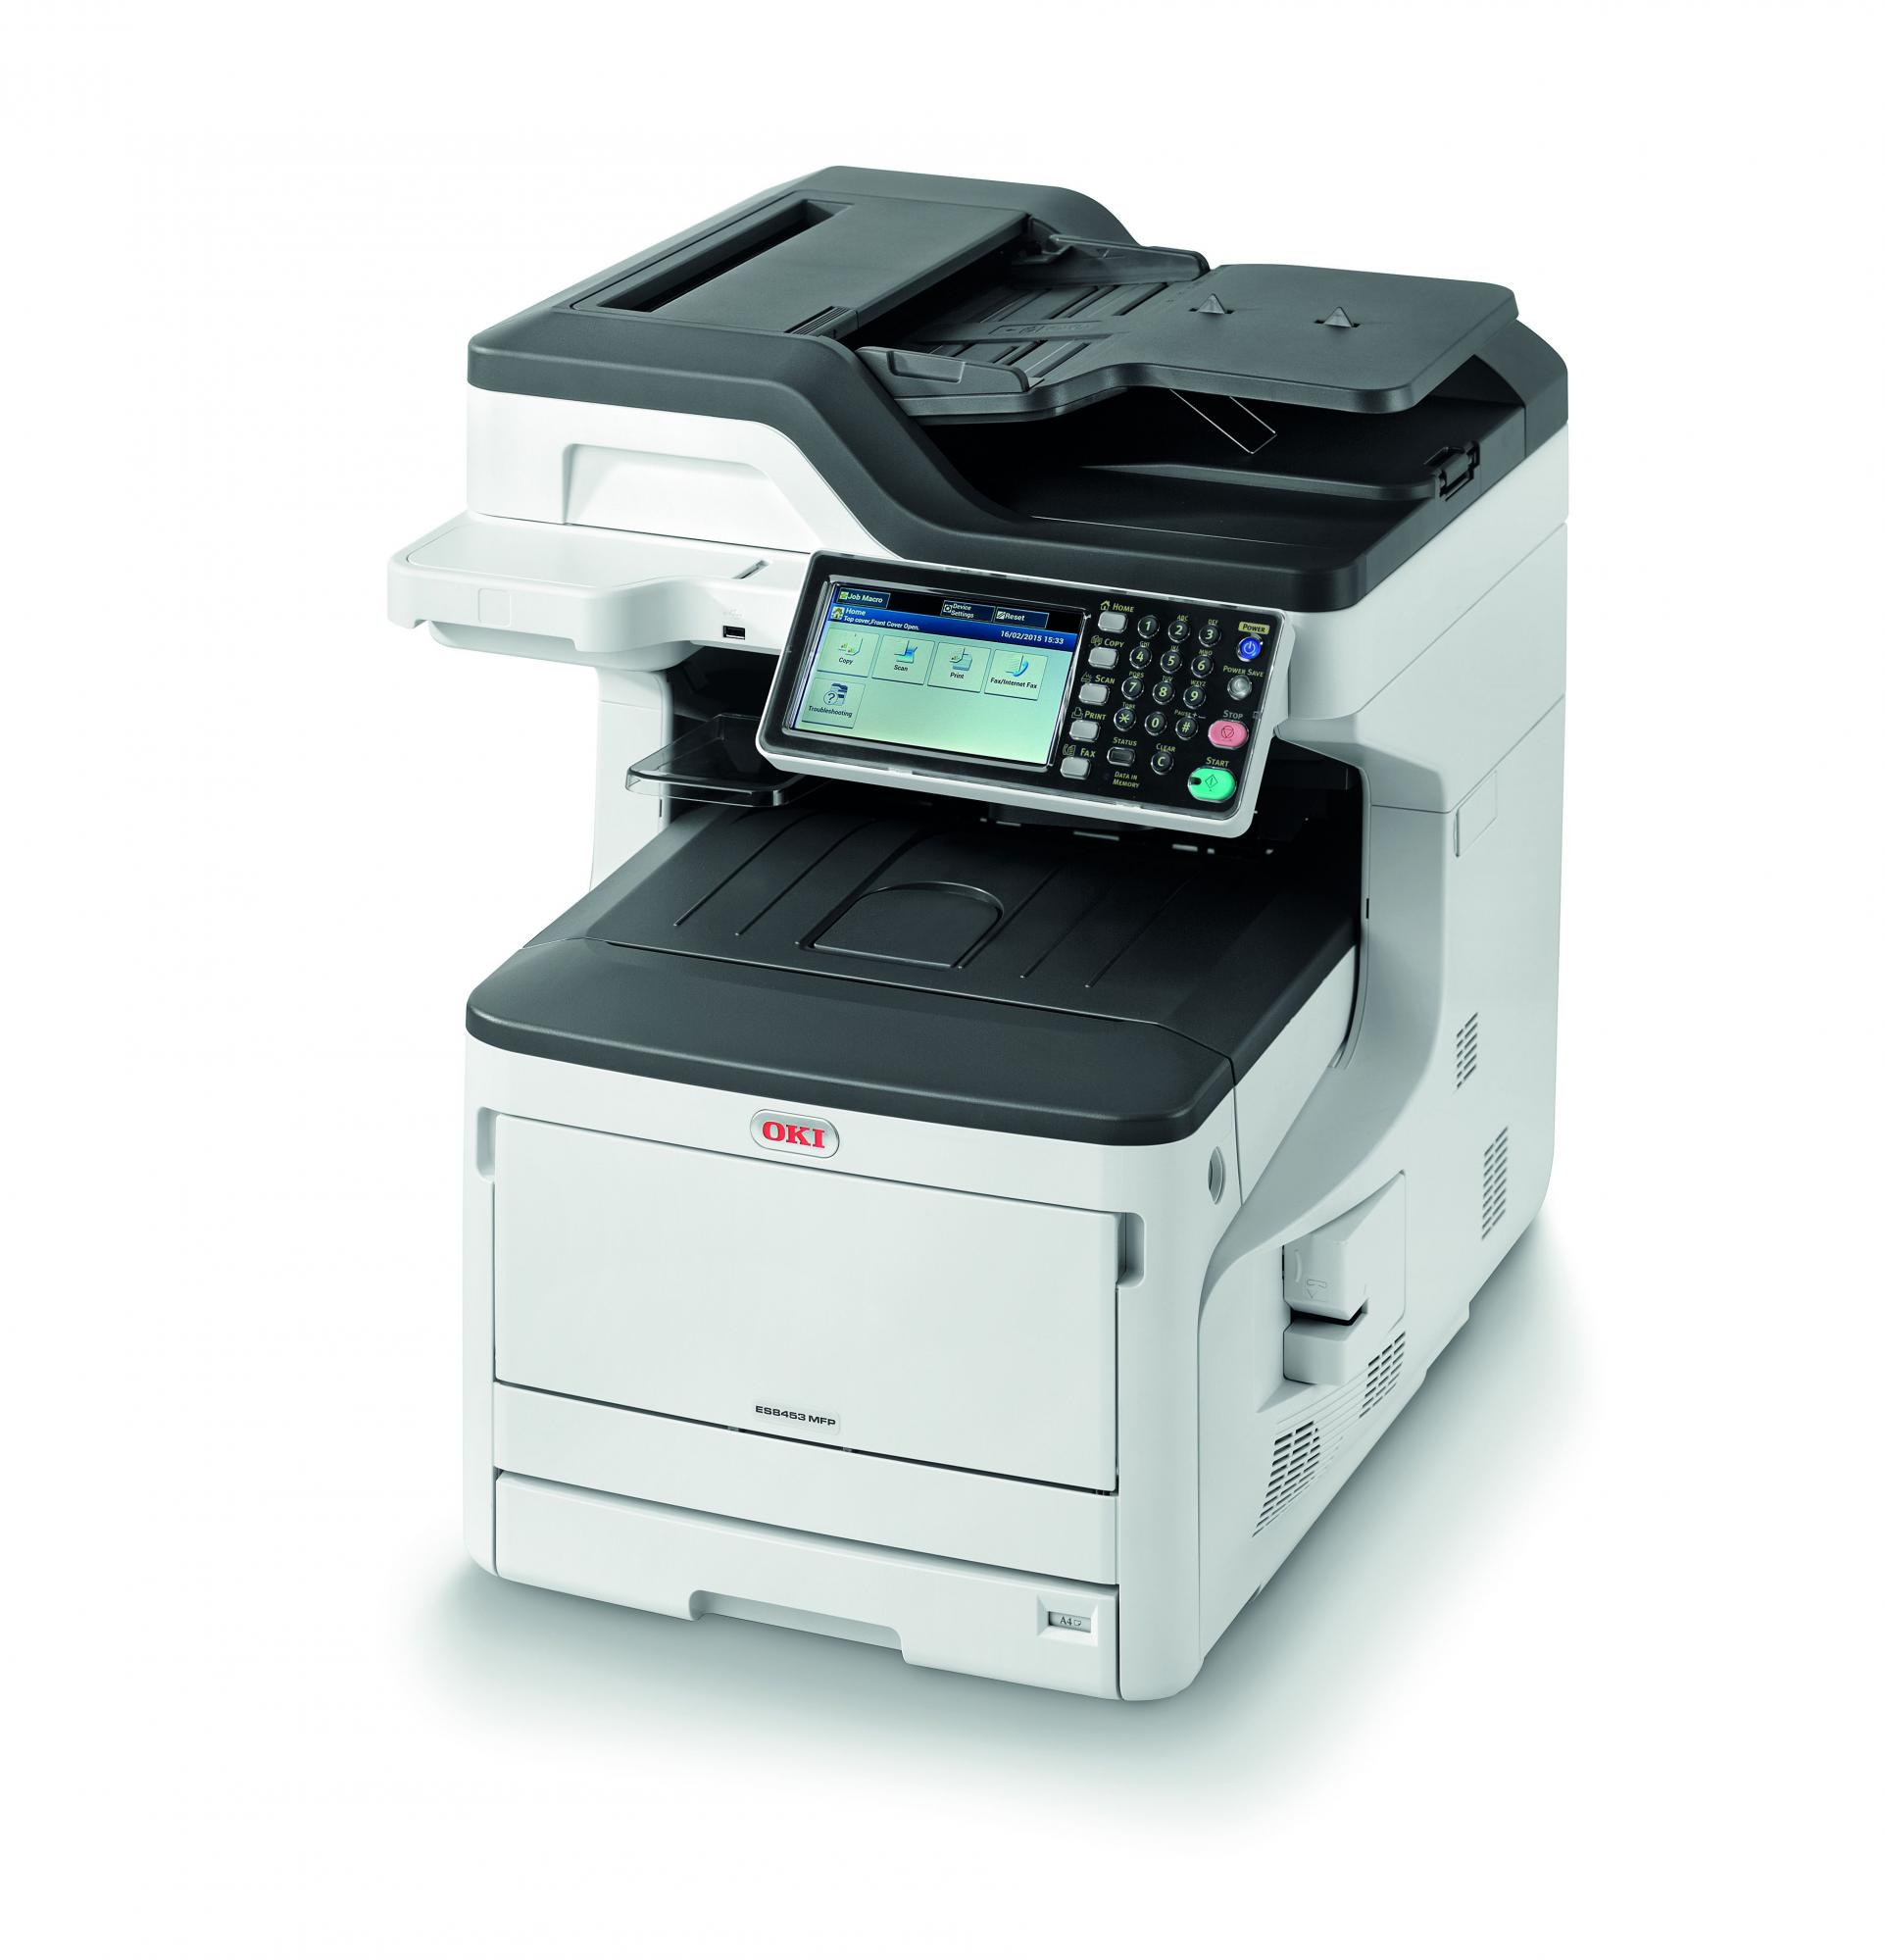 OKI ES8473dnv The versatile smart MFP, simple to use and seamlessly integrated into document workflow